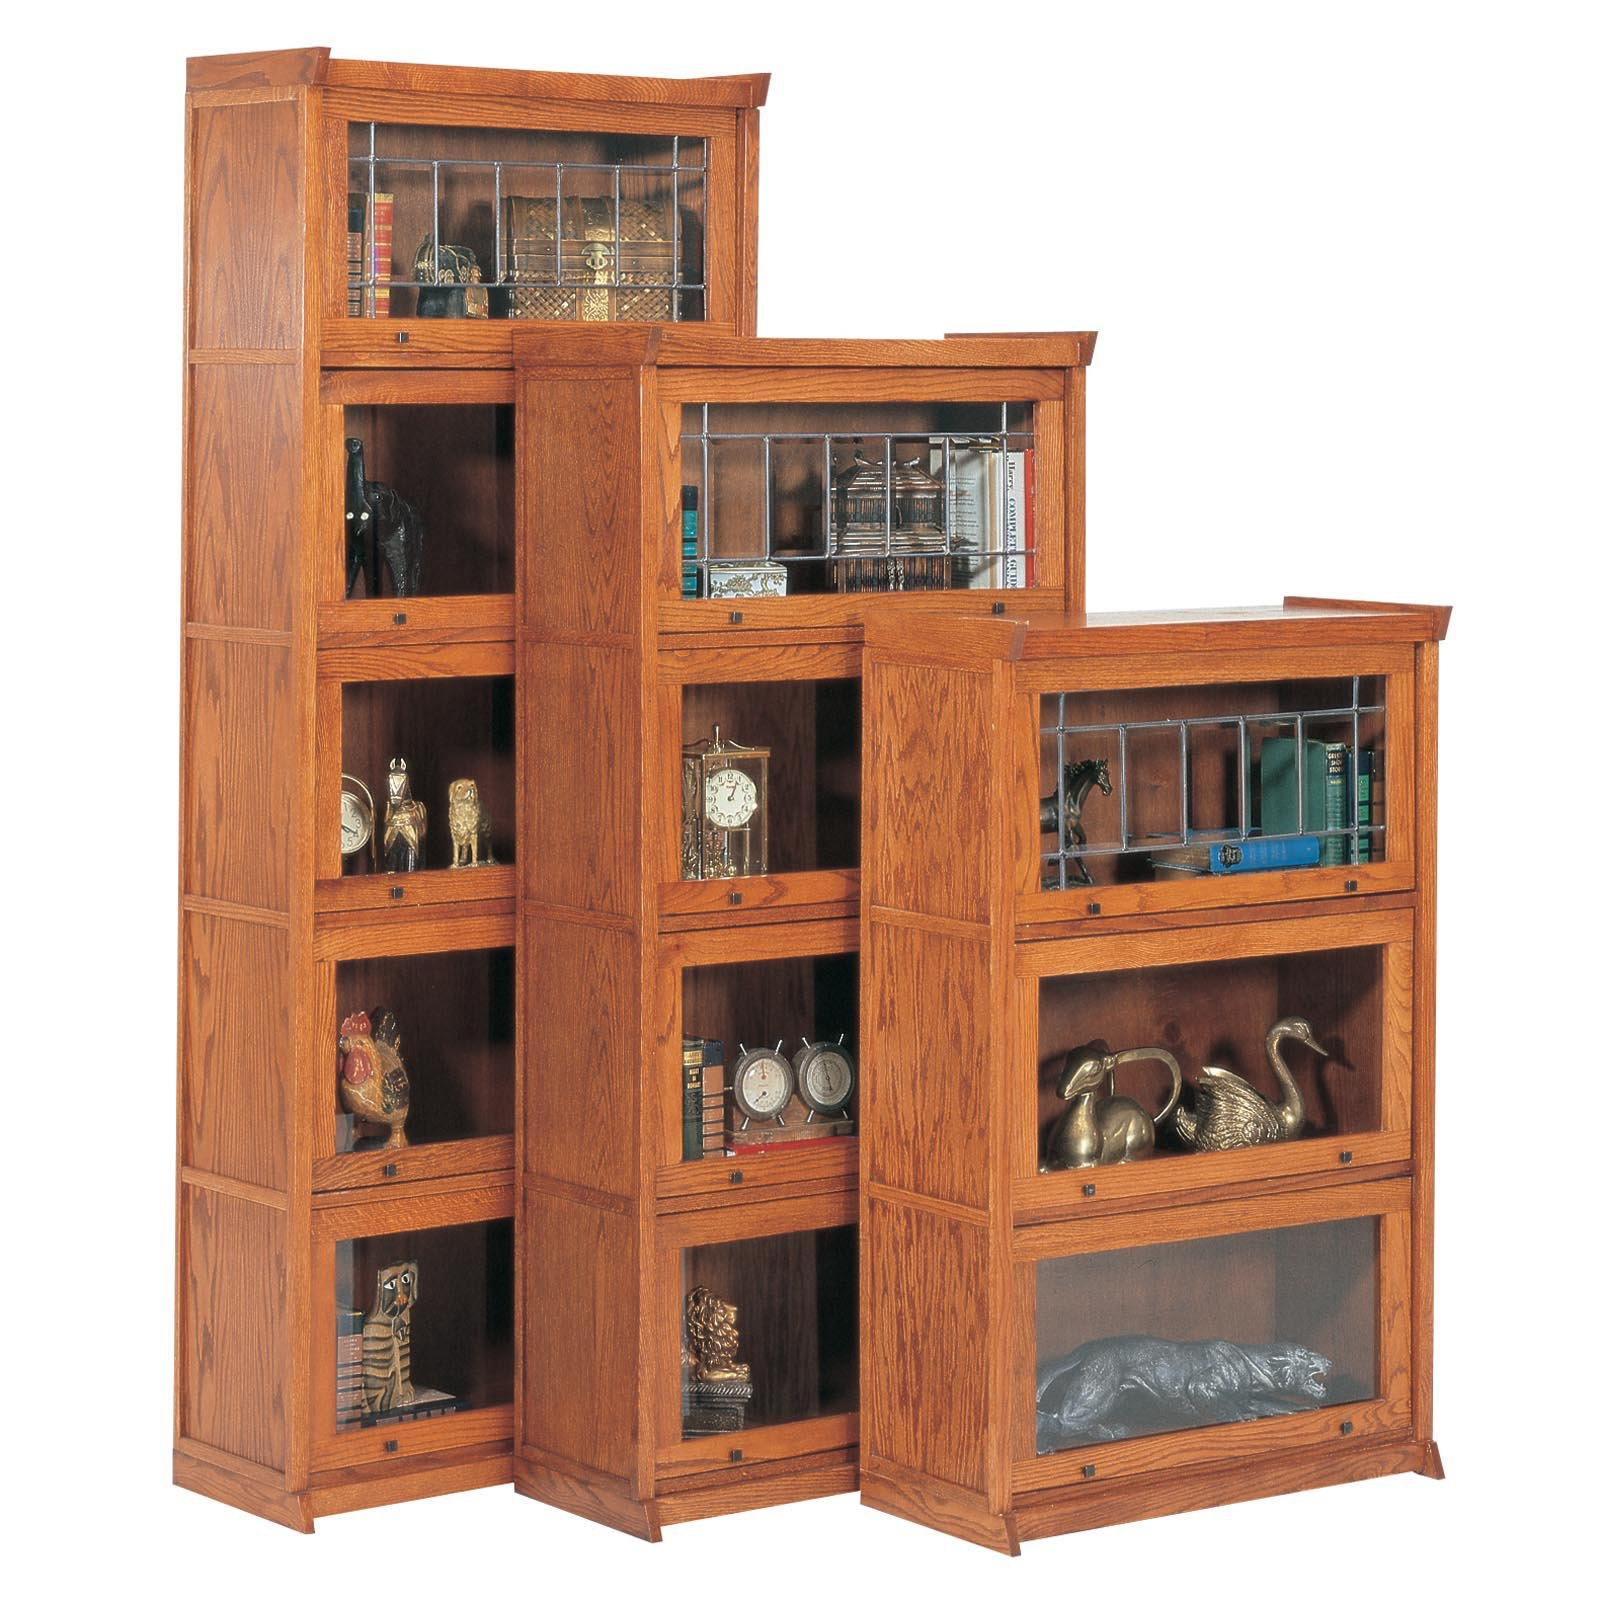 Image of: Mission Style Bookcase Picture